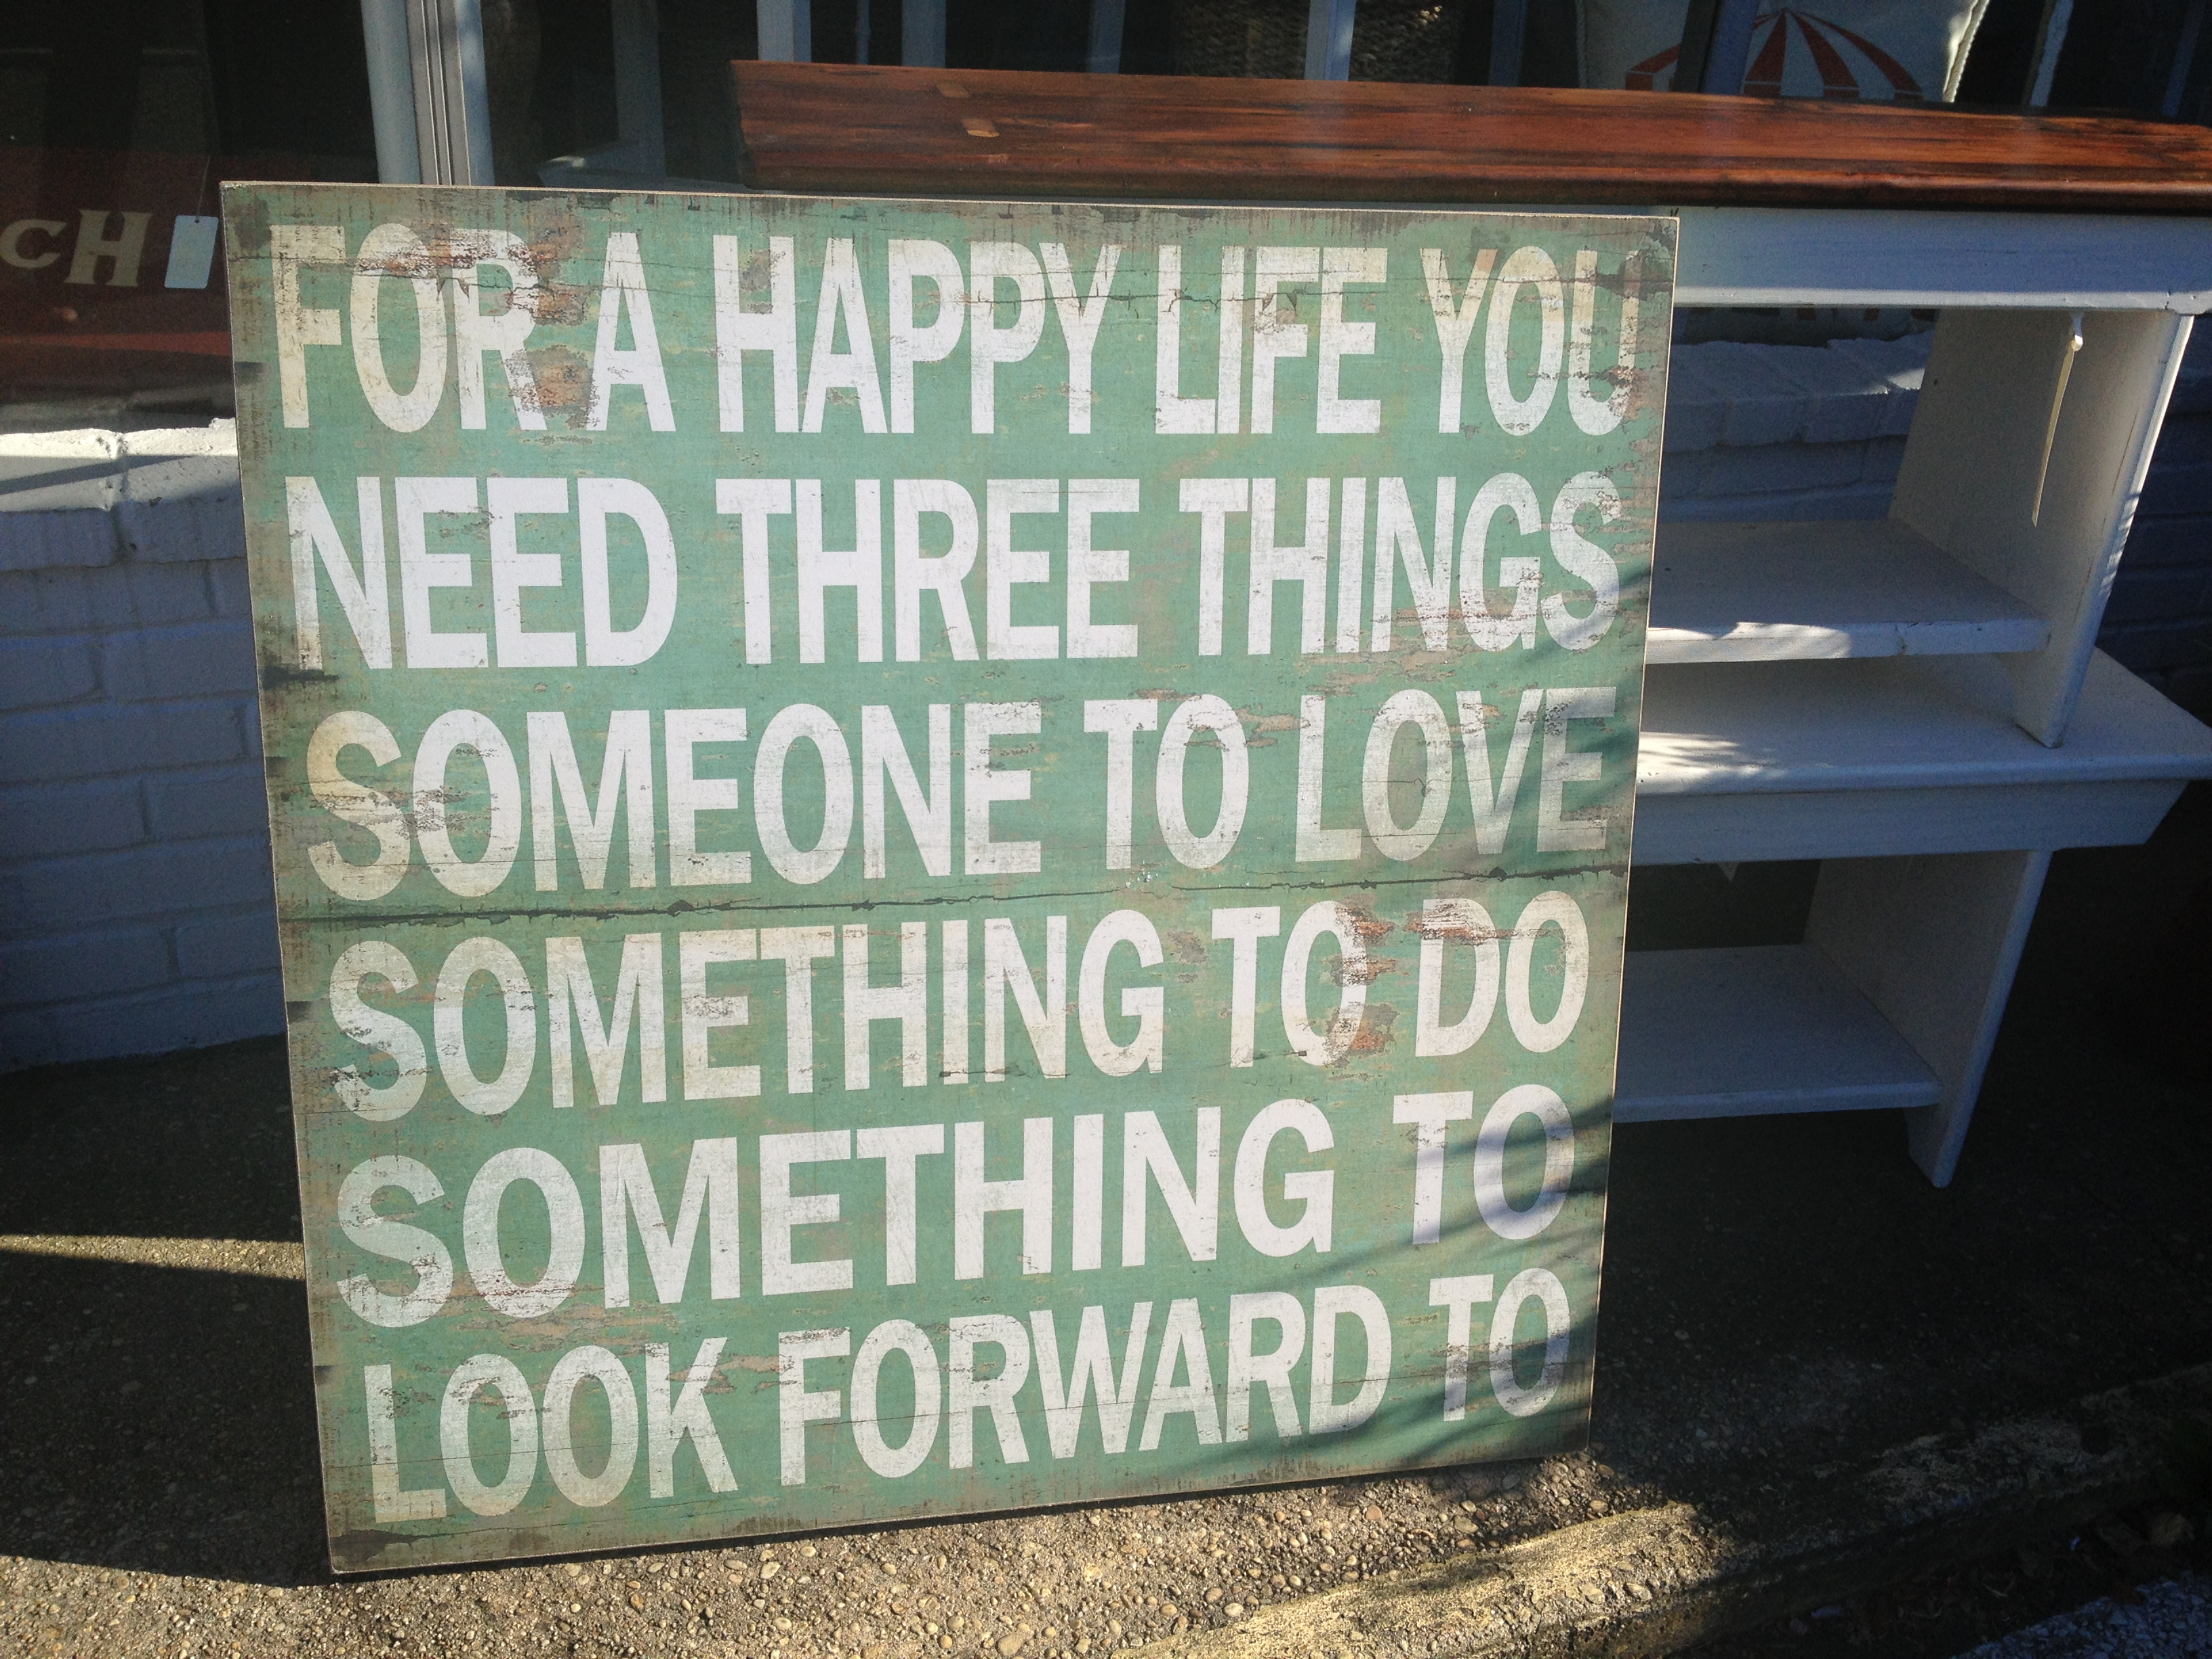 For a happy life